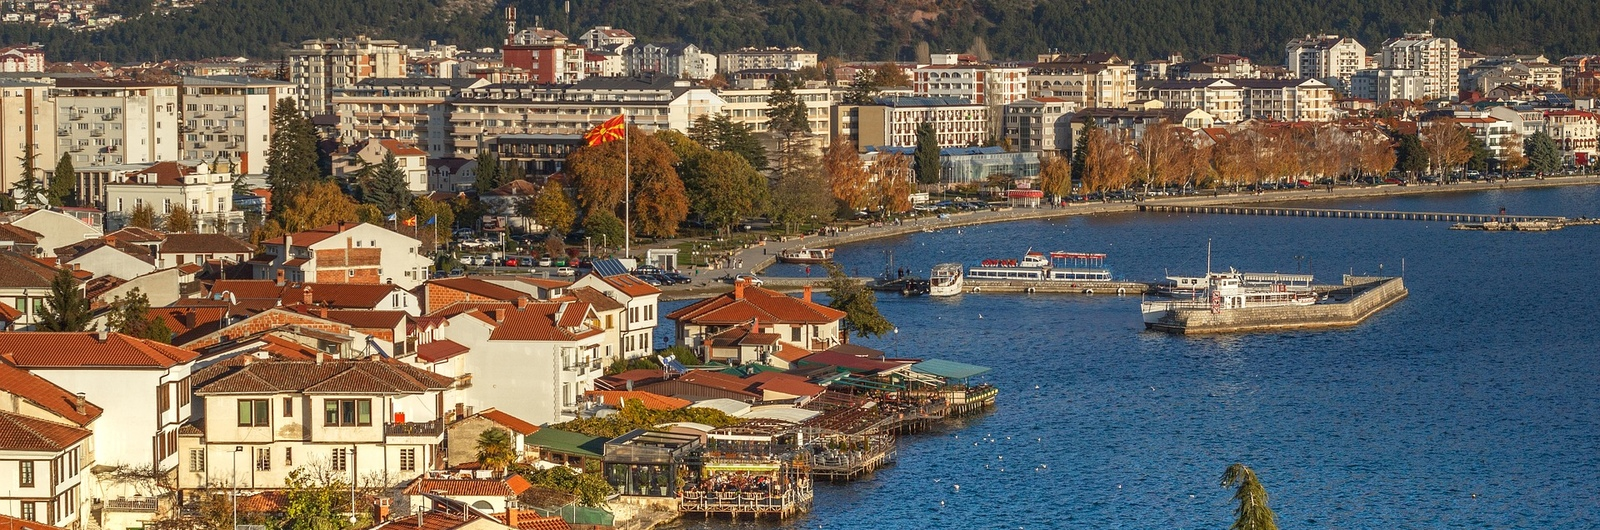 ohrid city header